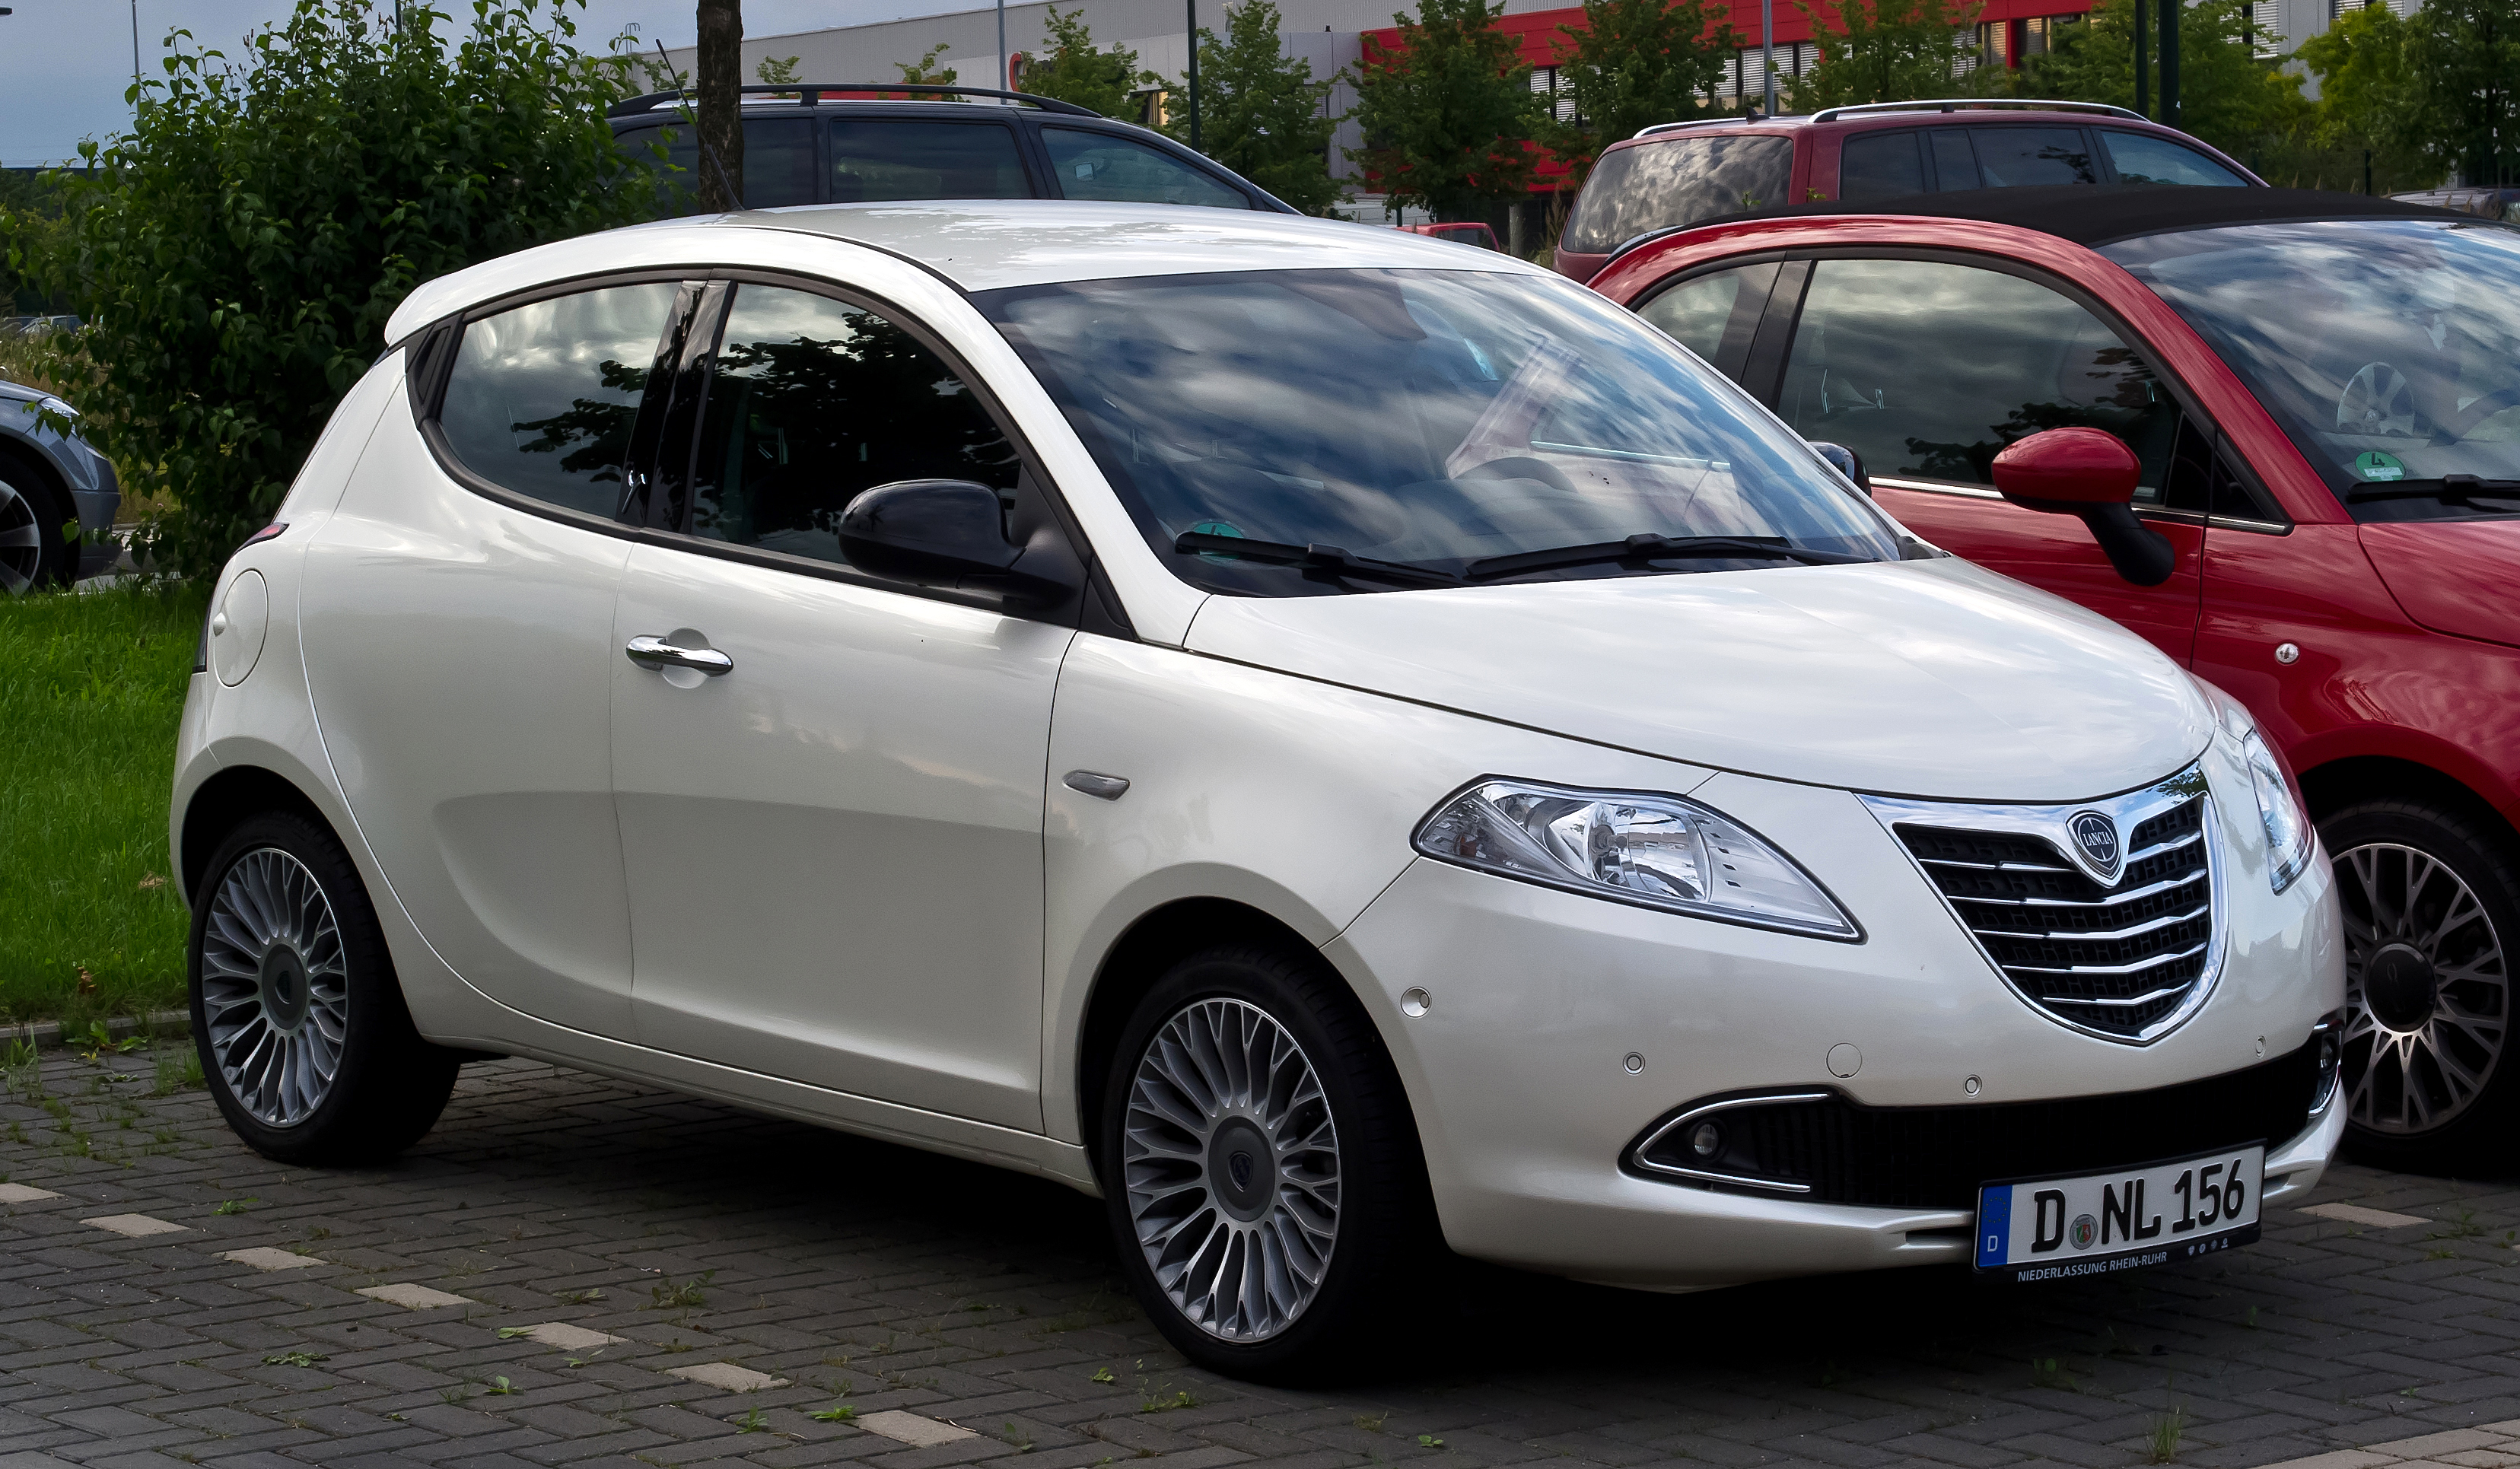 2018 Lancia Ypsilon Versus photo - 2